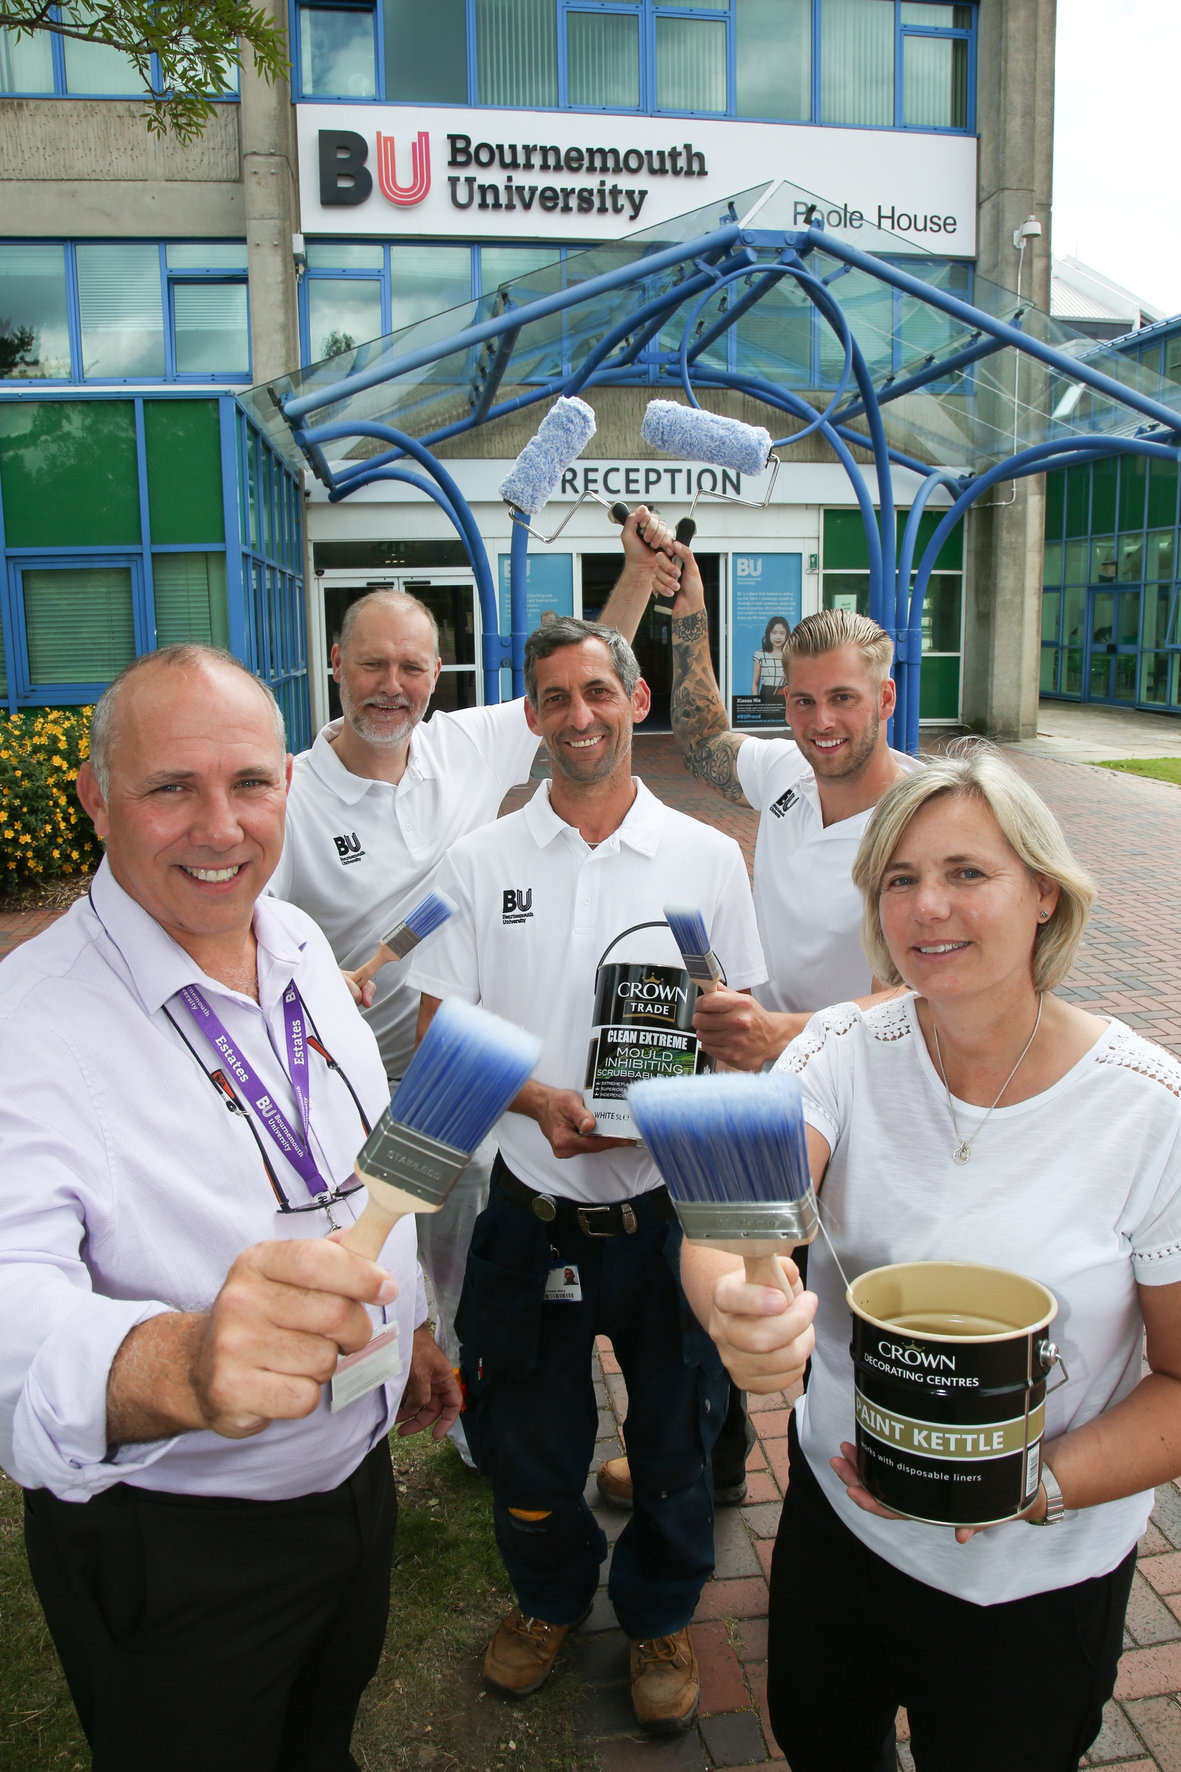 CROWN PAINTS A BRIGHT FUTURE WITH BOURNEMOUTH UNIVERSITY, crown trade